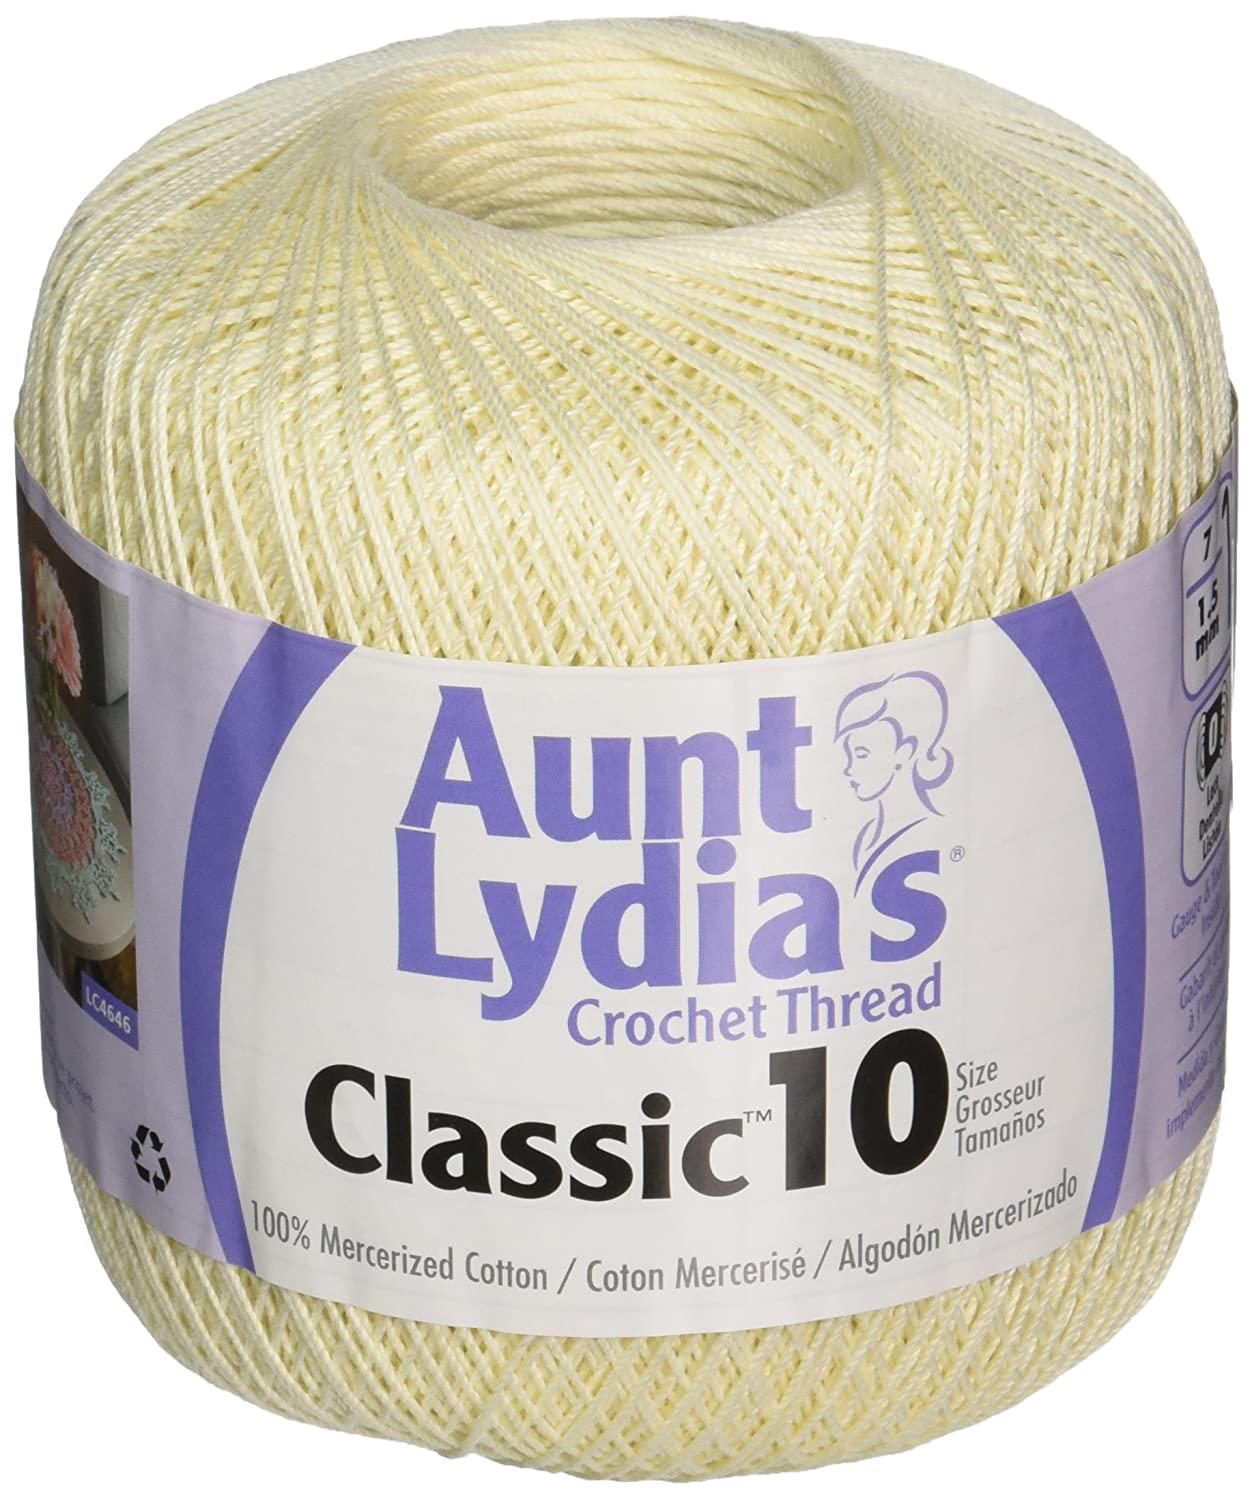 Amazon.com: Coats Crochet Aunt Lydias Crochet, Cotton Classic Size 10, Cream: Arts, Crafts & Sewing